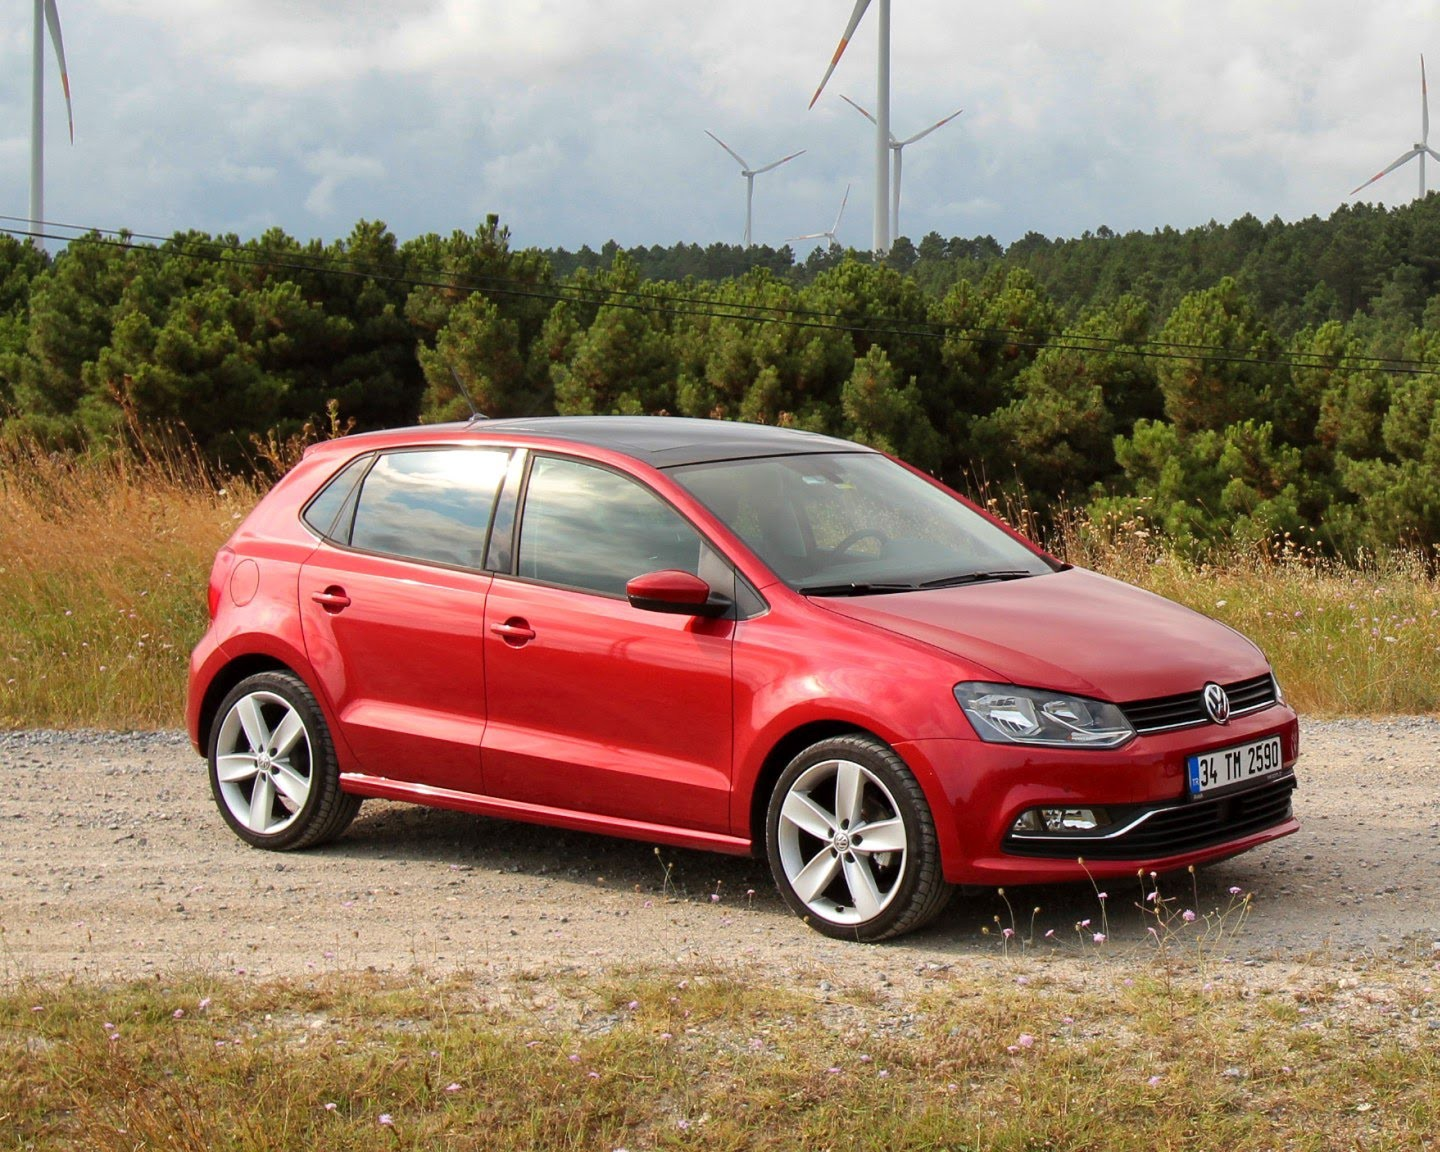 vw polo 1.2 tsi review